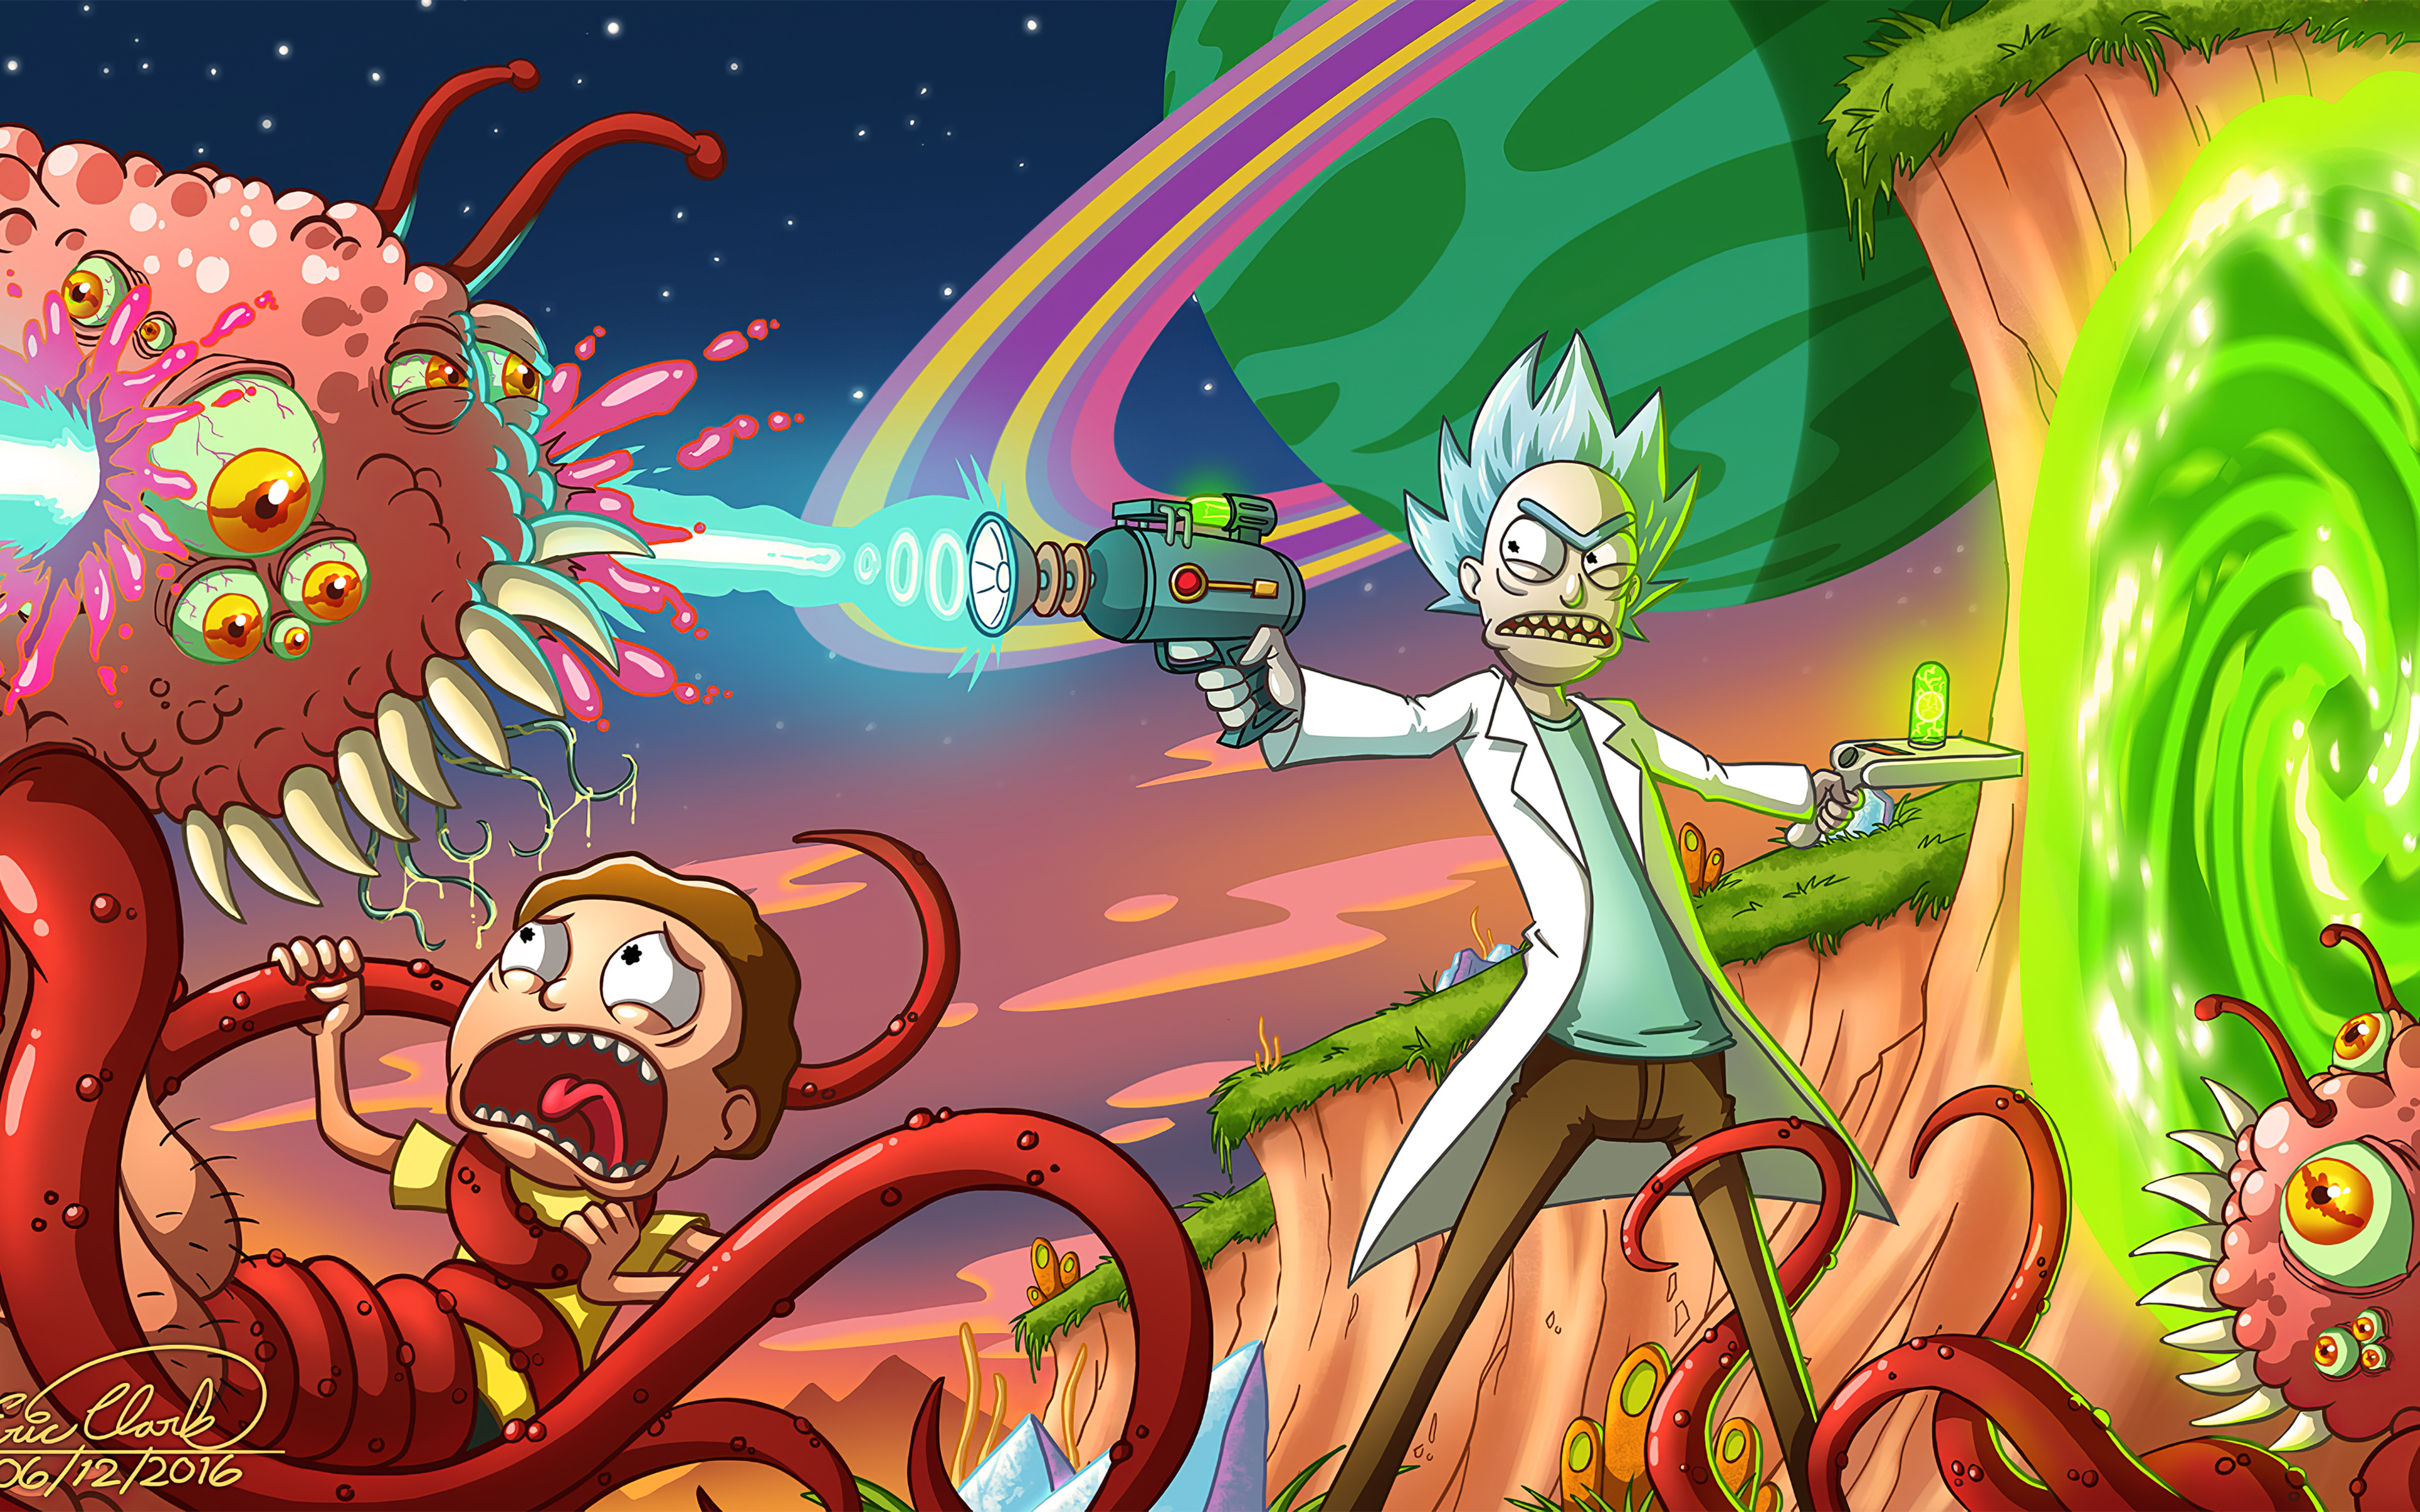 Wallpaper Morty being attacked